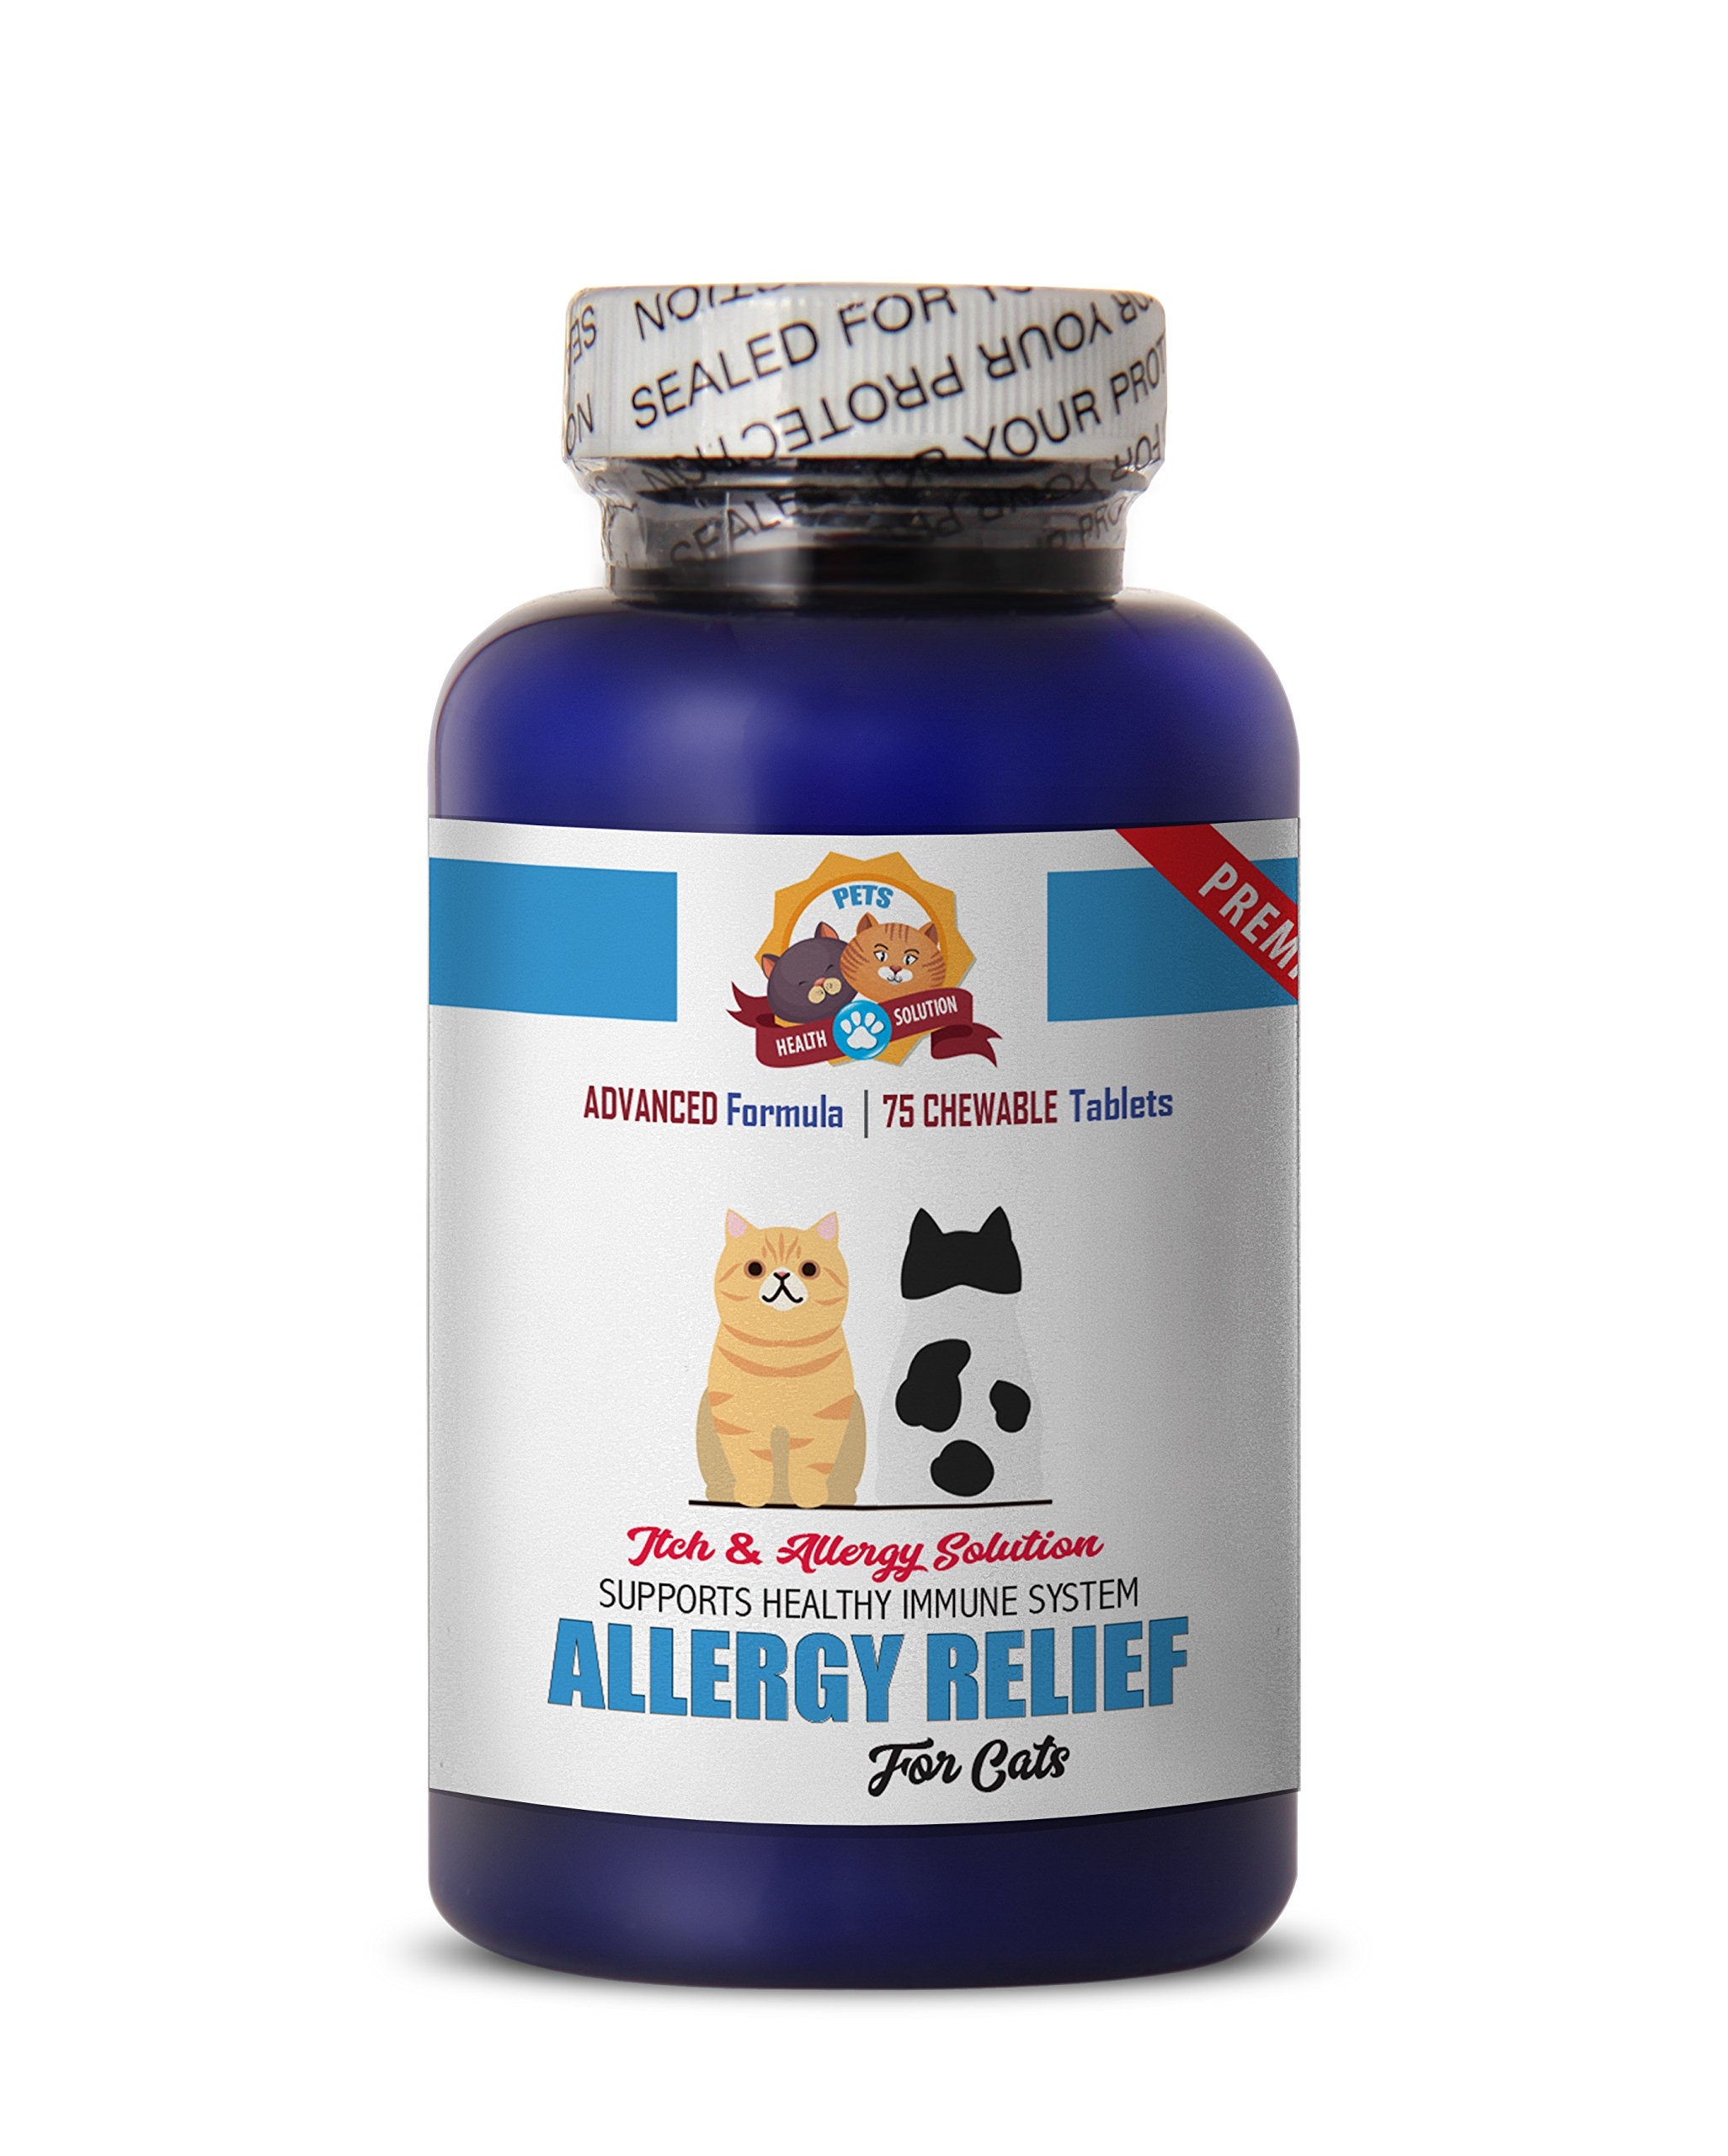 PETS HEALTH SOLUTION allergy pills for cats - PREMIUM ALLERGY RELIEF FOR CATS - IMMUNE SUPPORT - STOP THAT ITCH - TREATS - cats allergy relief - 75 Treats (1 Bottle) by PETS HEALTH SOLUTION